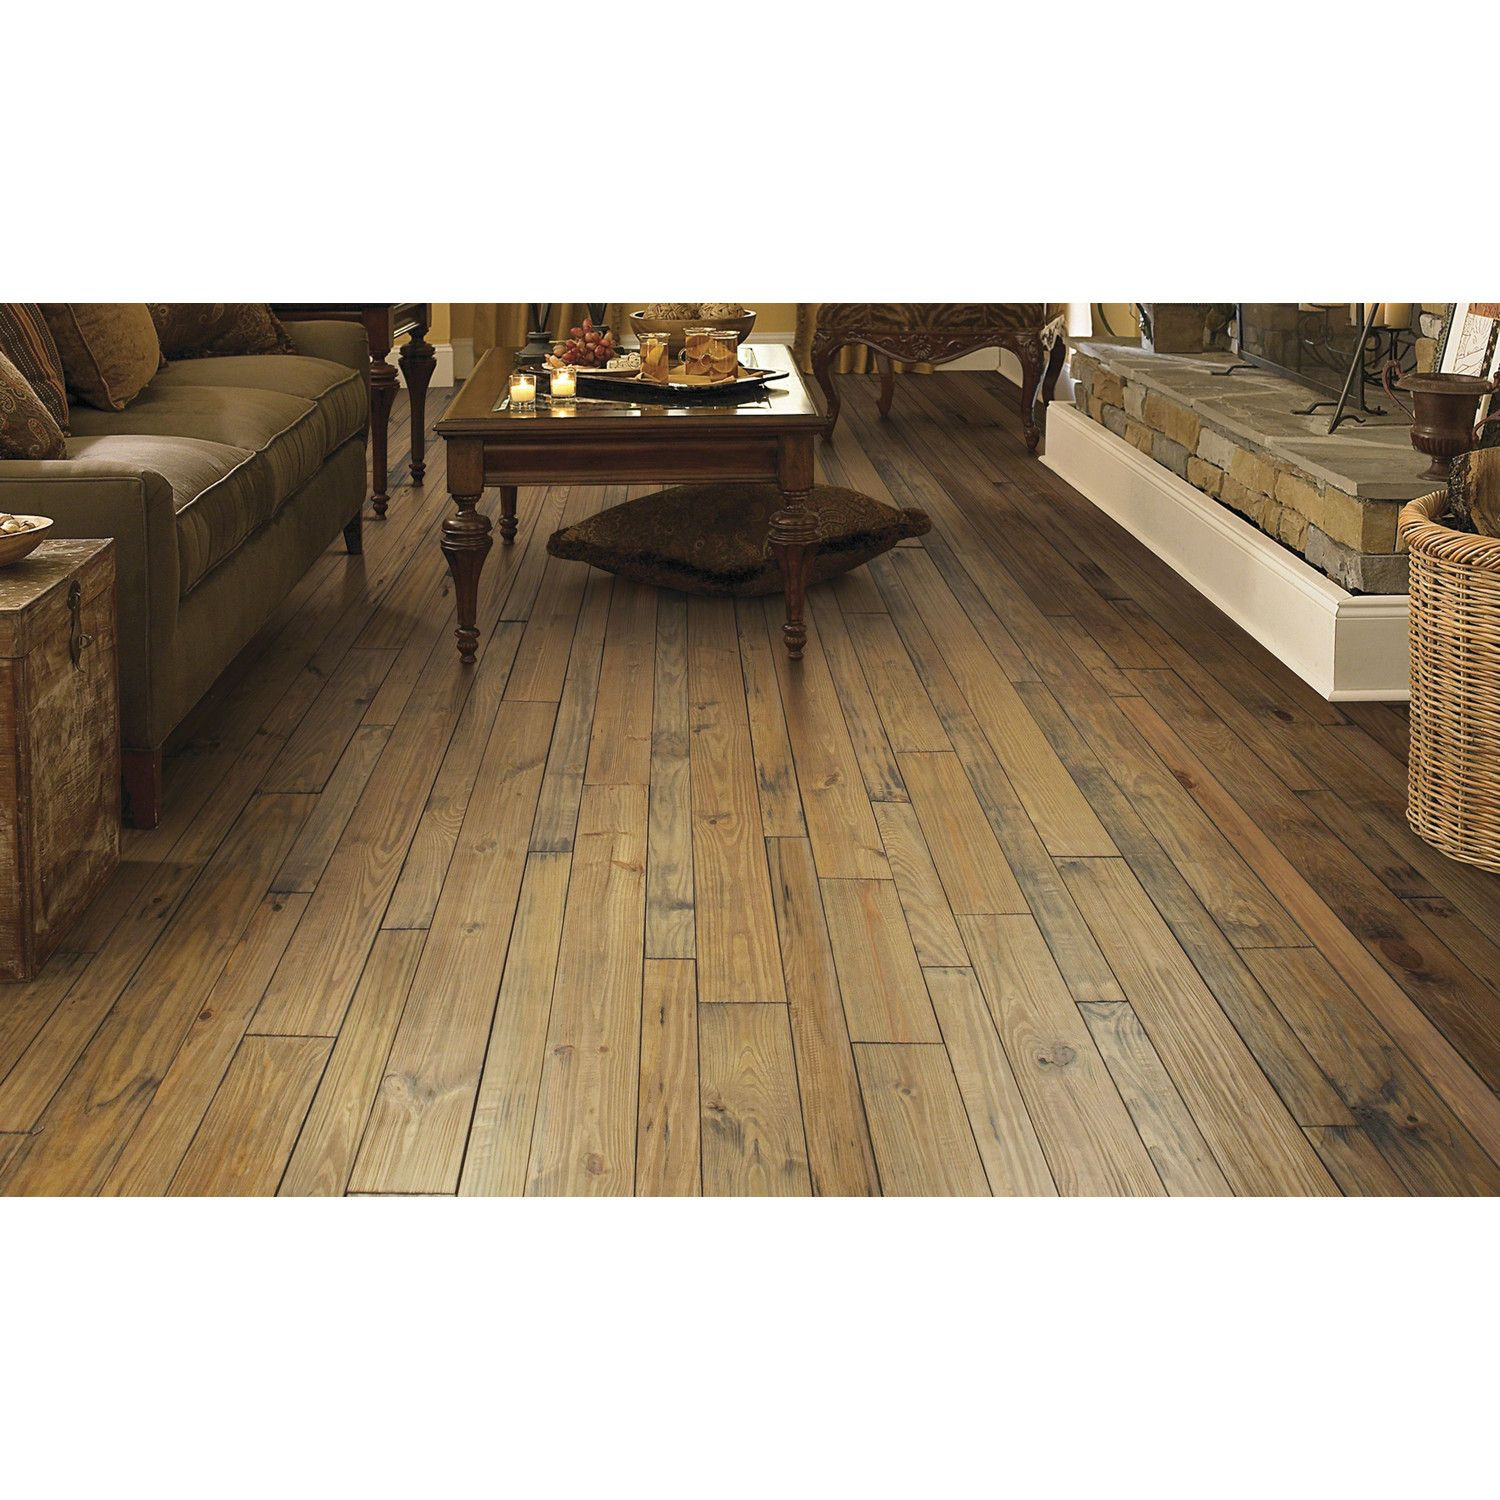 hardwood floor refinishing memphis tn of anderson floors elements random width solid pine hardwood flooring intended for anderson floors elements random width solid pine hardwood flooring in fossil